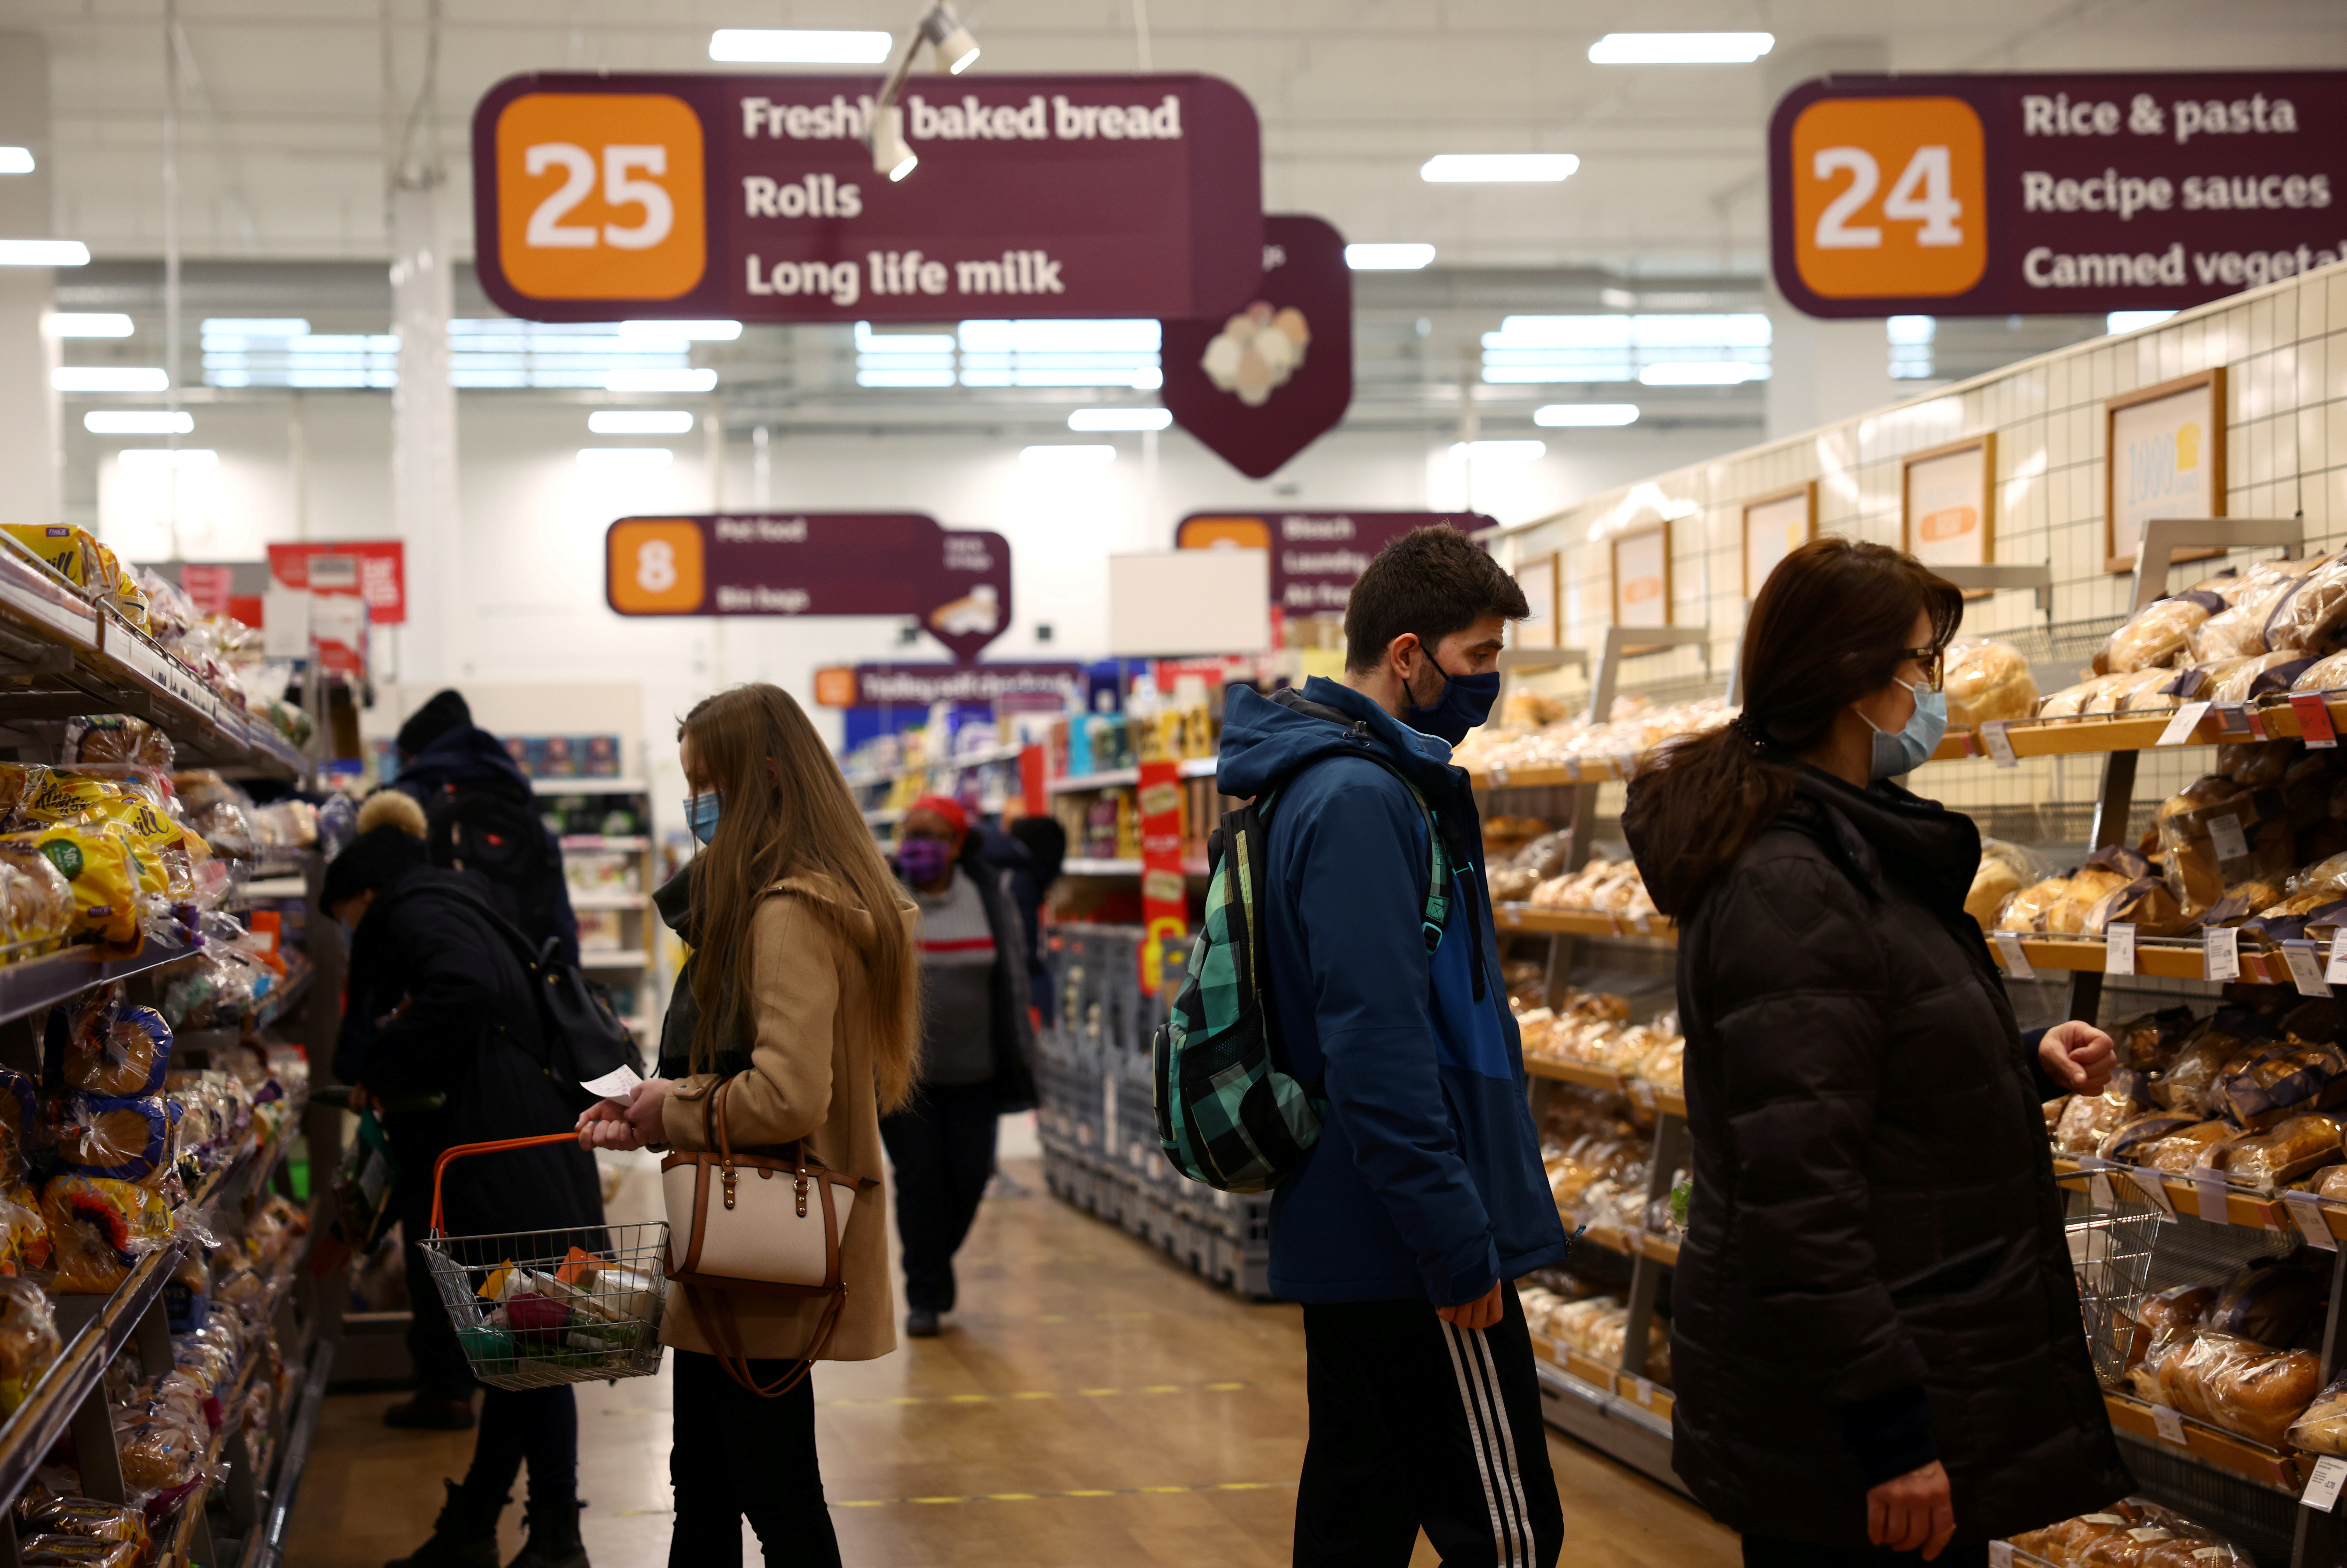 Shoppers look at bread in a Sainsbury's supermarket, amid the coronavirus disease (COVID-19) outbreak, in London, Britain January 12, 2021. REUTERS/Henry Nicholls/File Photo